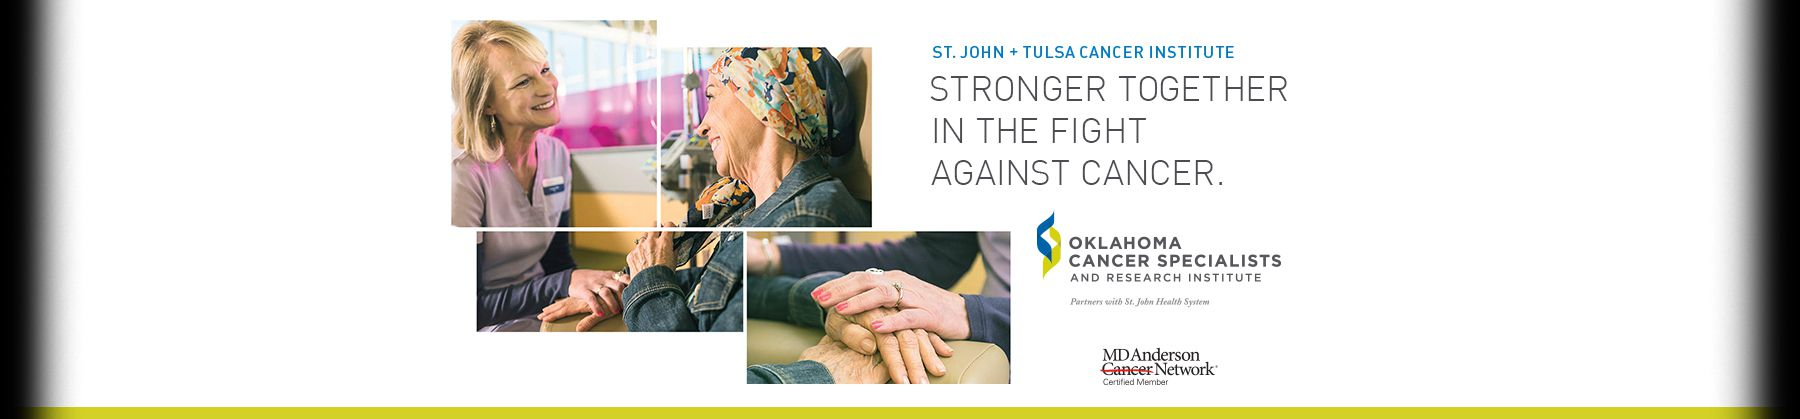 Stronger Together in the Fight Against Cancer